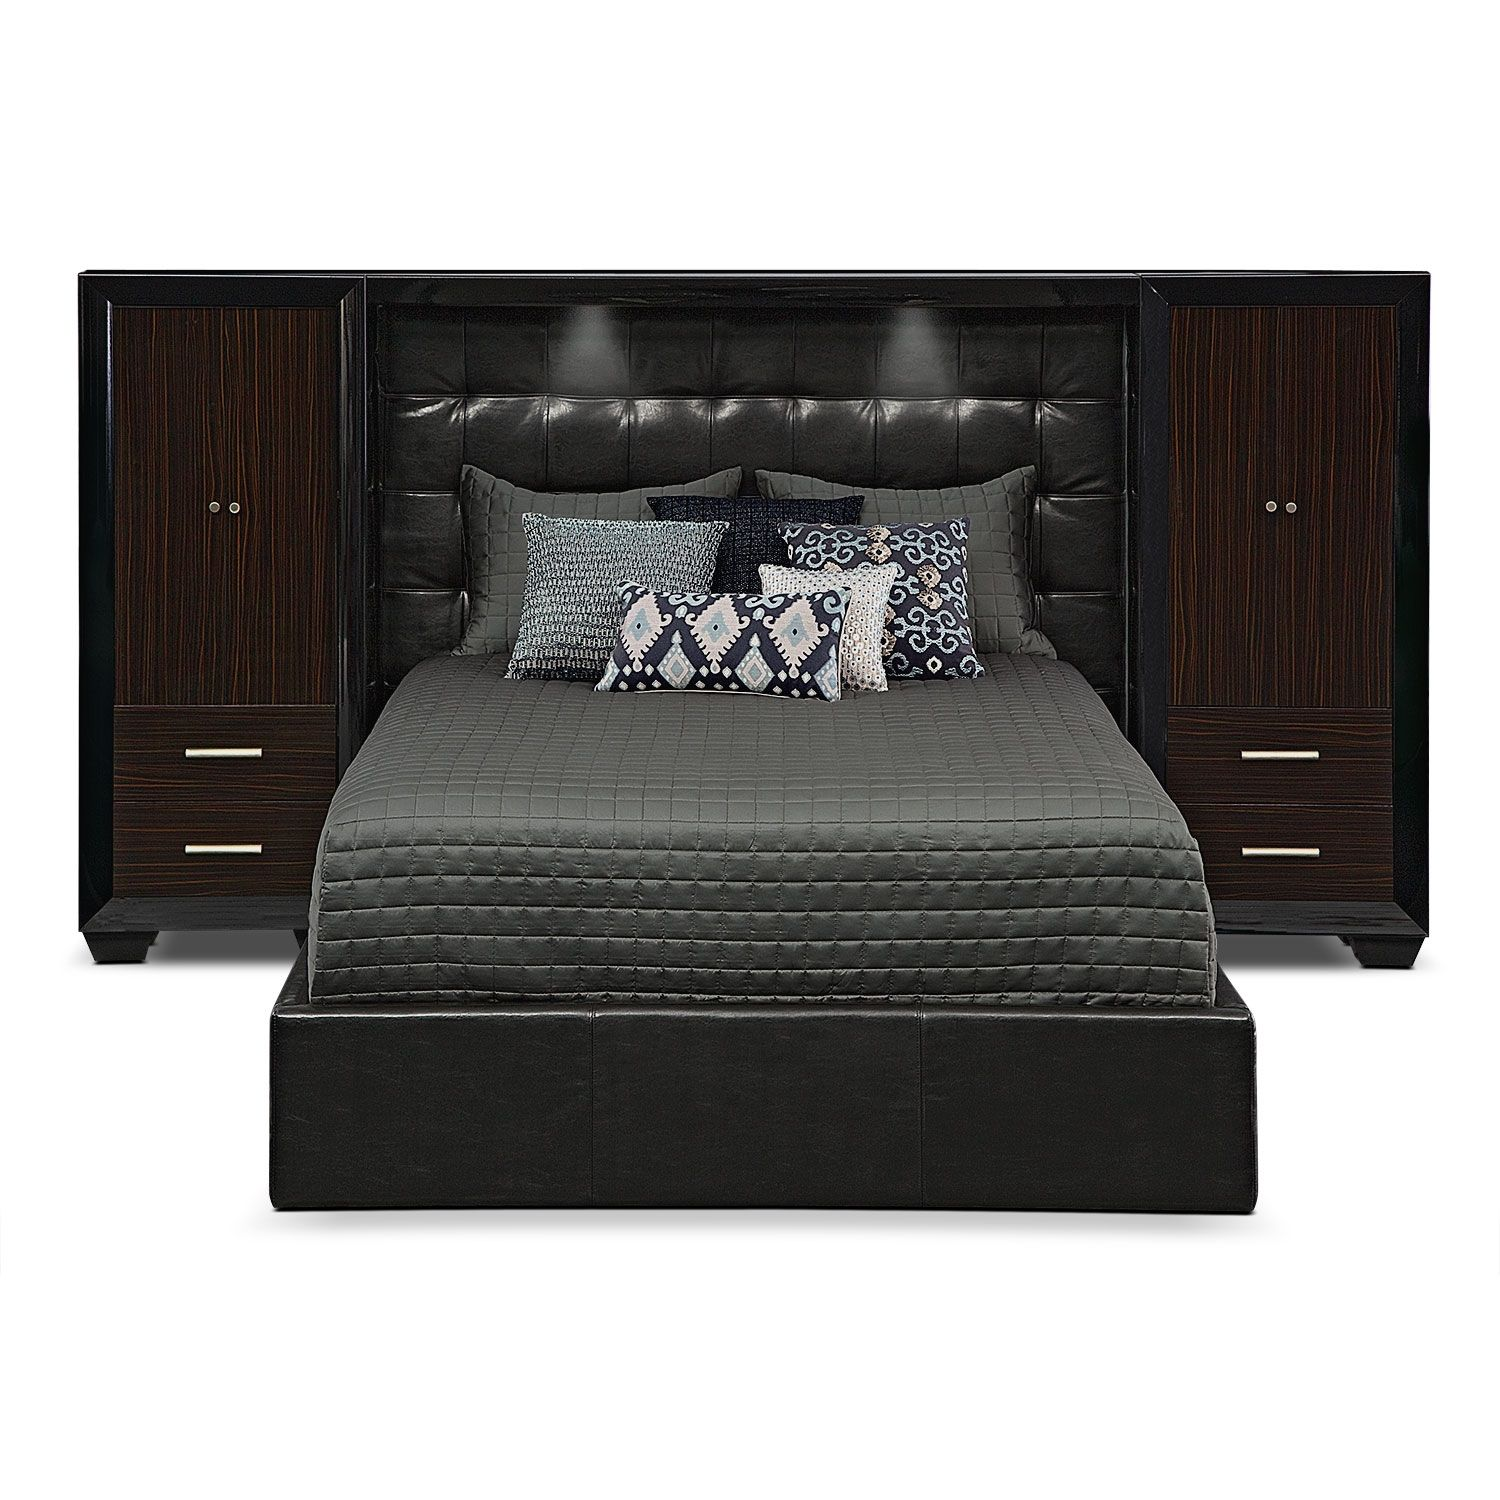 Pier Wall Bedroom Furniture The Bed Set I Really Liked Today Serenity King Wall Bed With